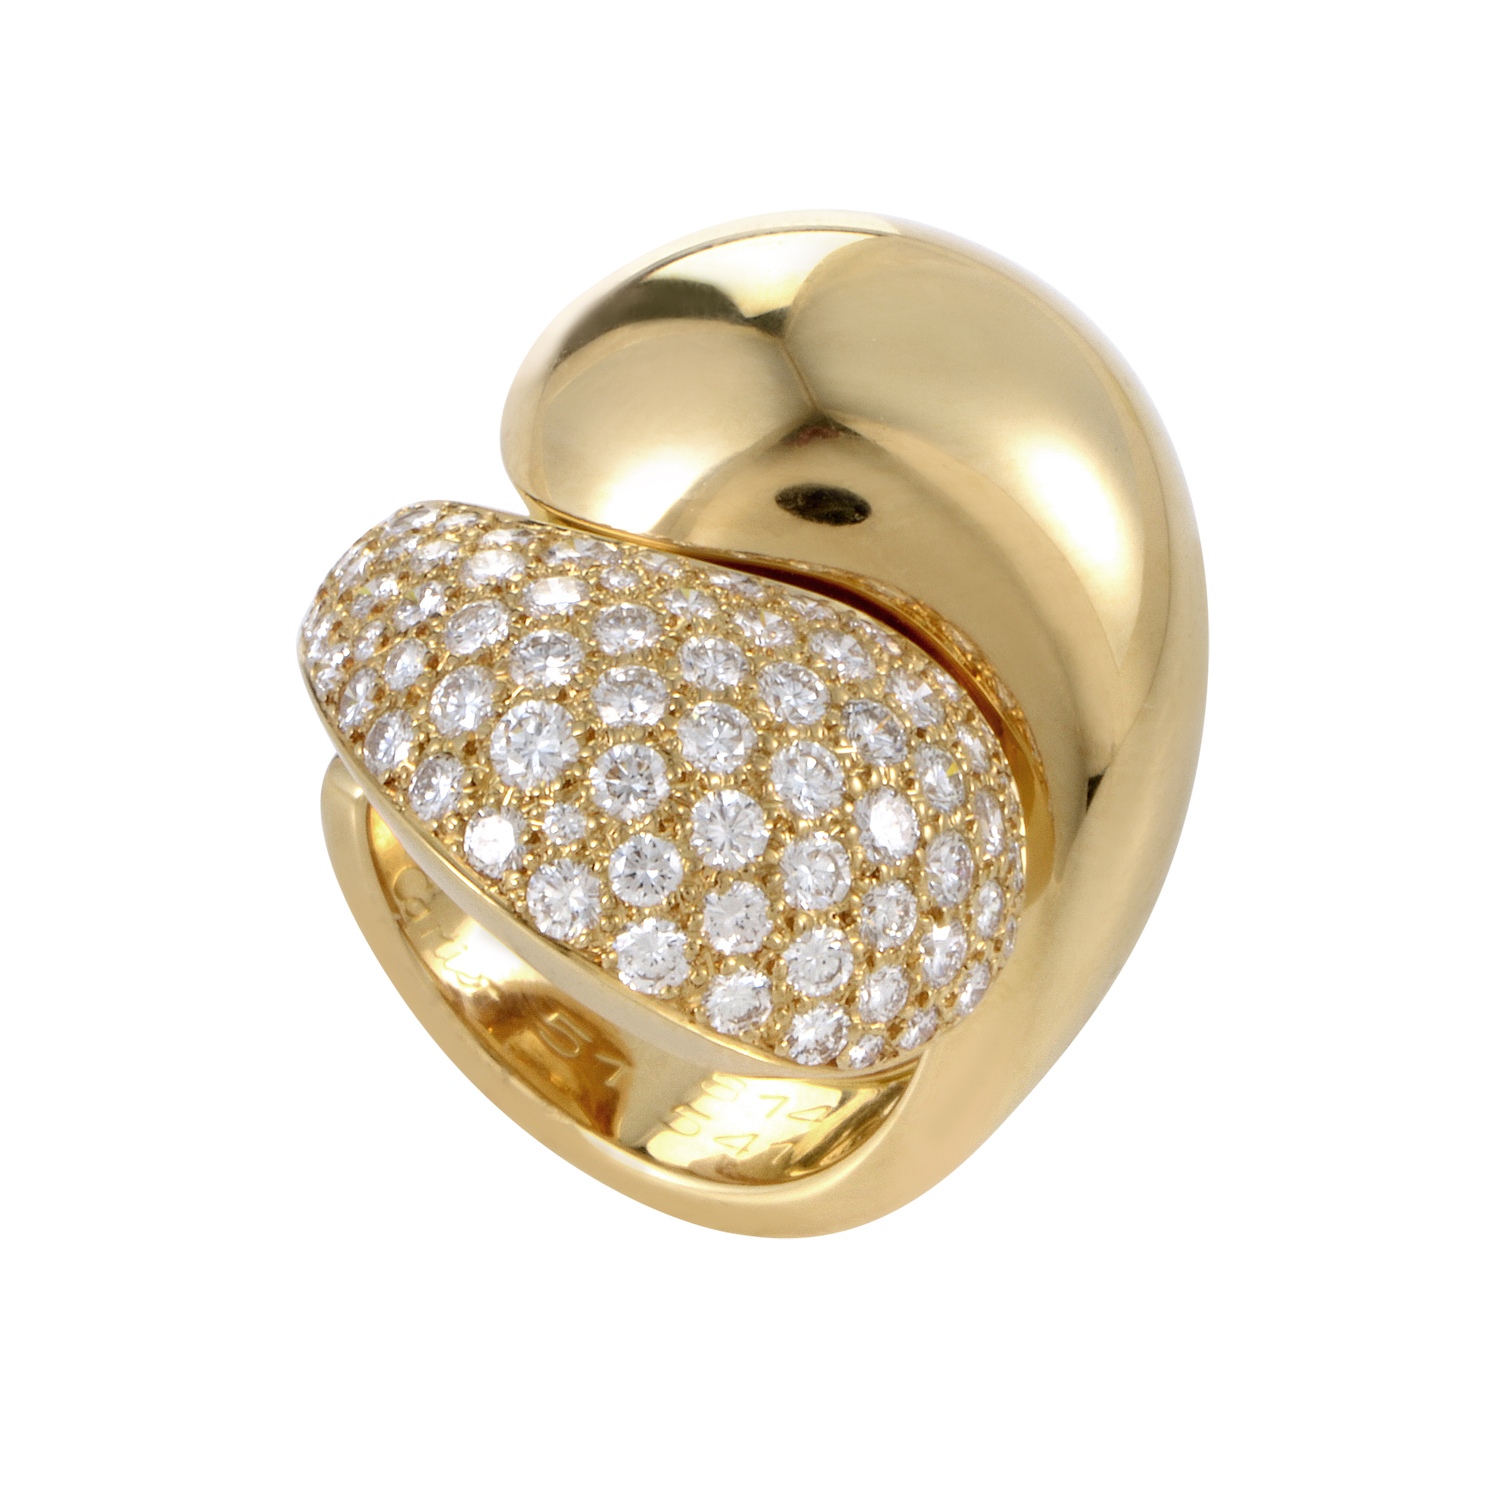 Cartier Le Yin et Le Yang Women's 18K Yellow Gold Partial Diamond Pave Ring